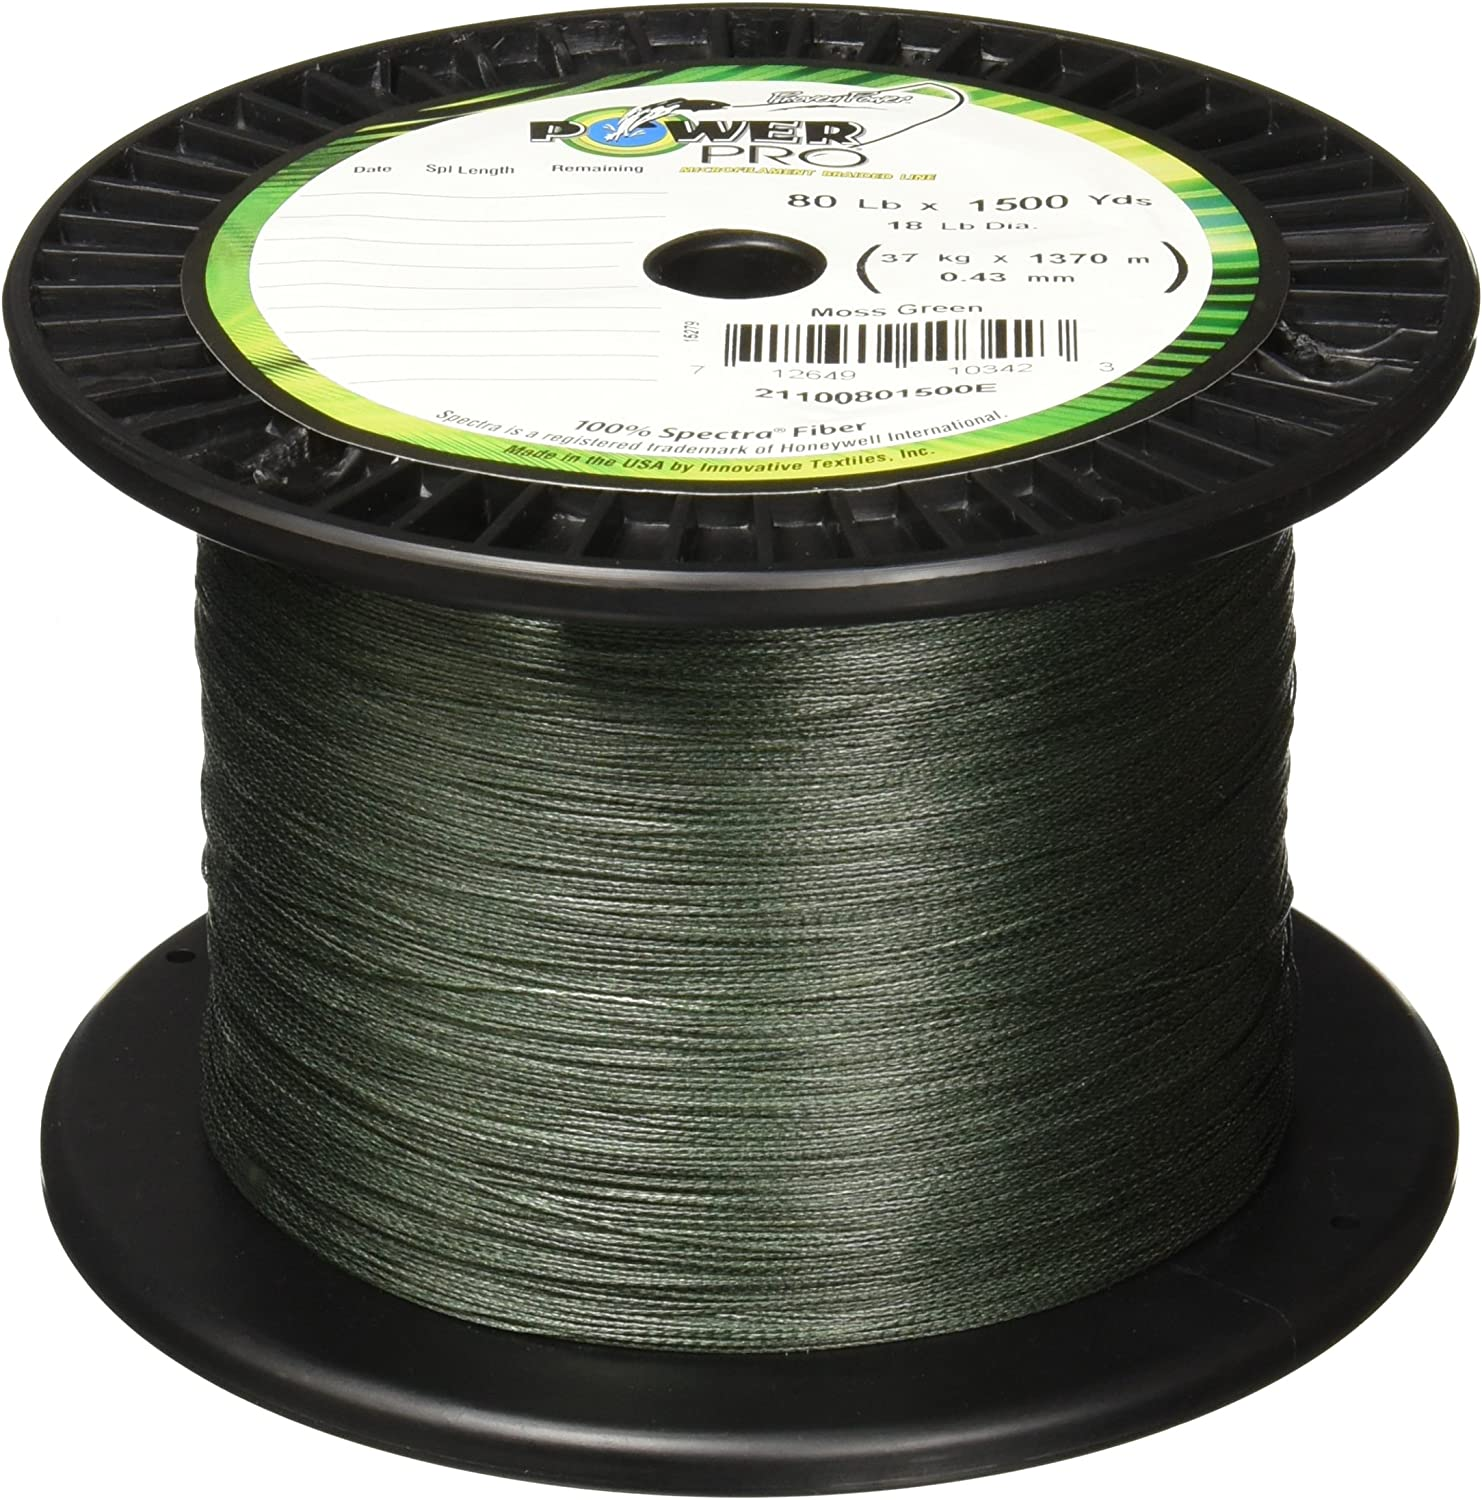 Power Pro Spectra Fiber-Braided Fishing Line